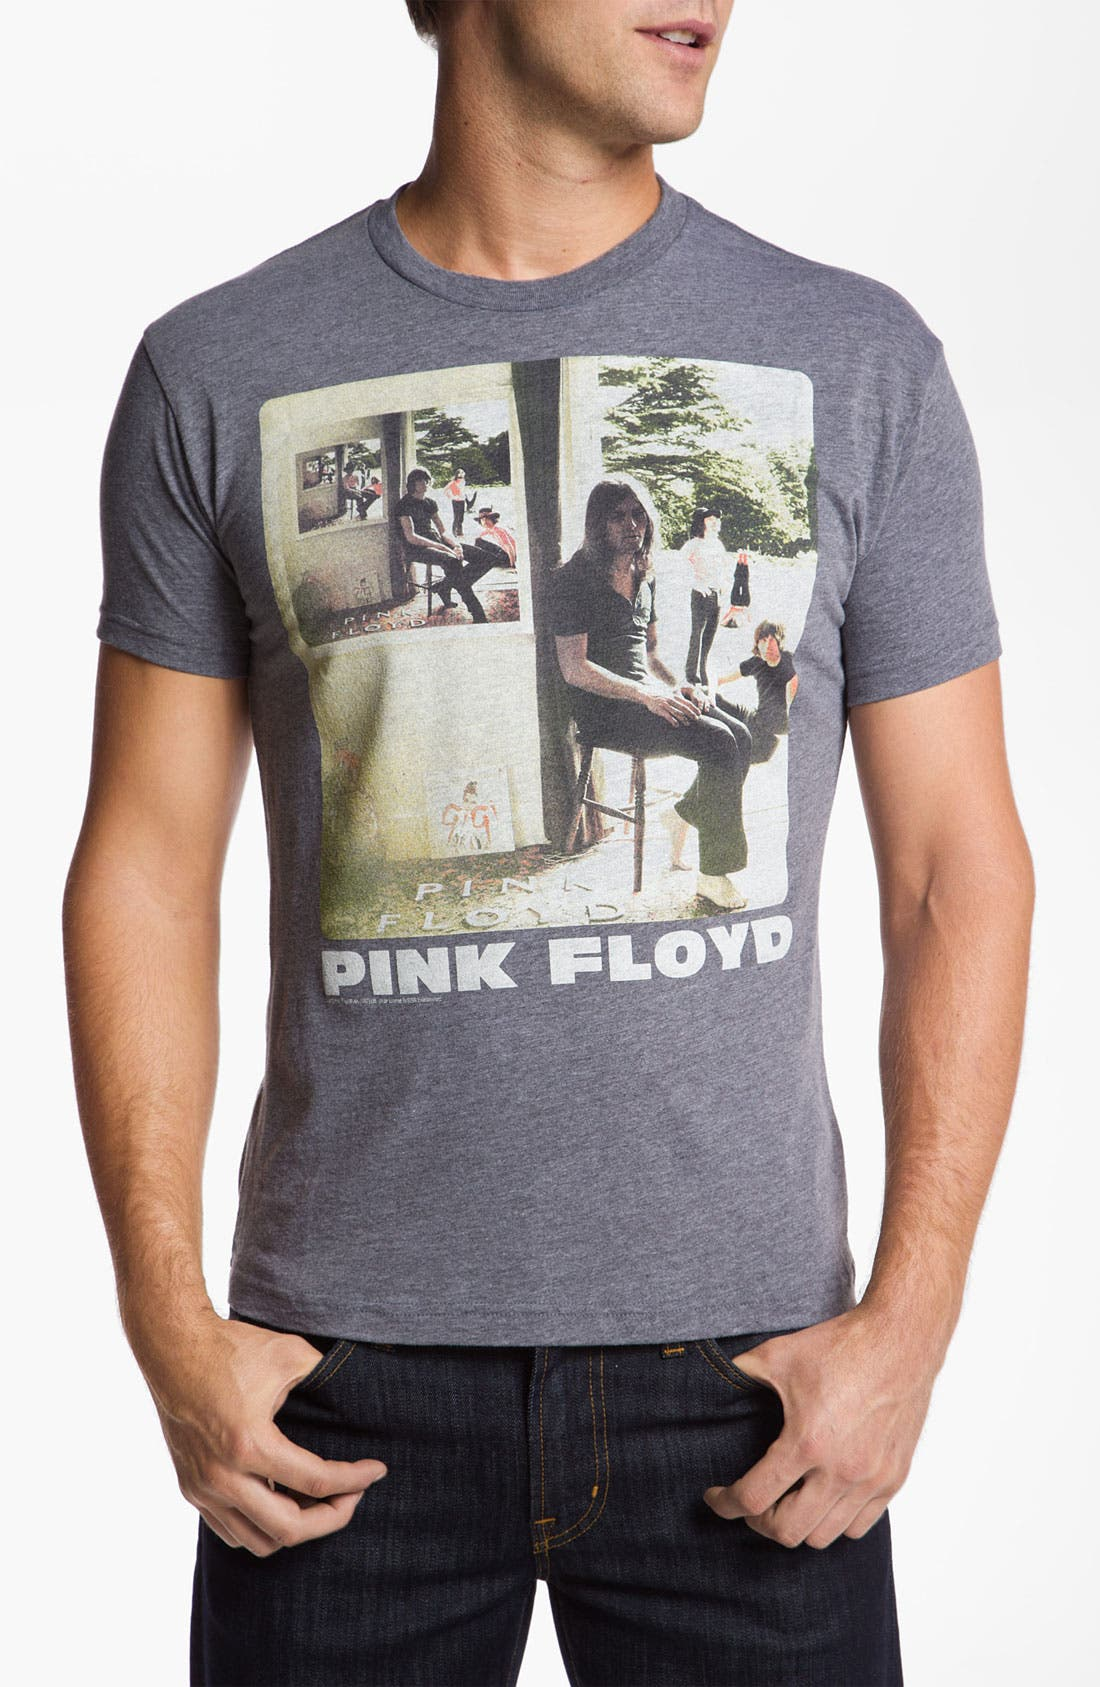 Alternate Image 1 Selected - Free Authority 'Pink Floyd' Graphic T-Shirt